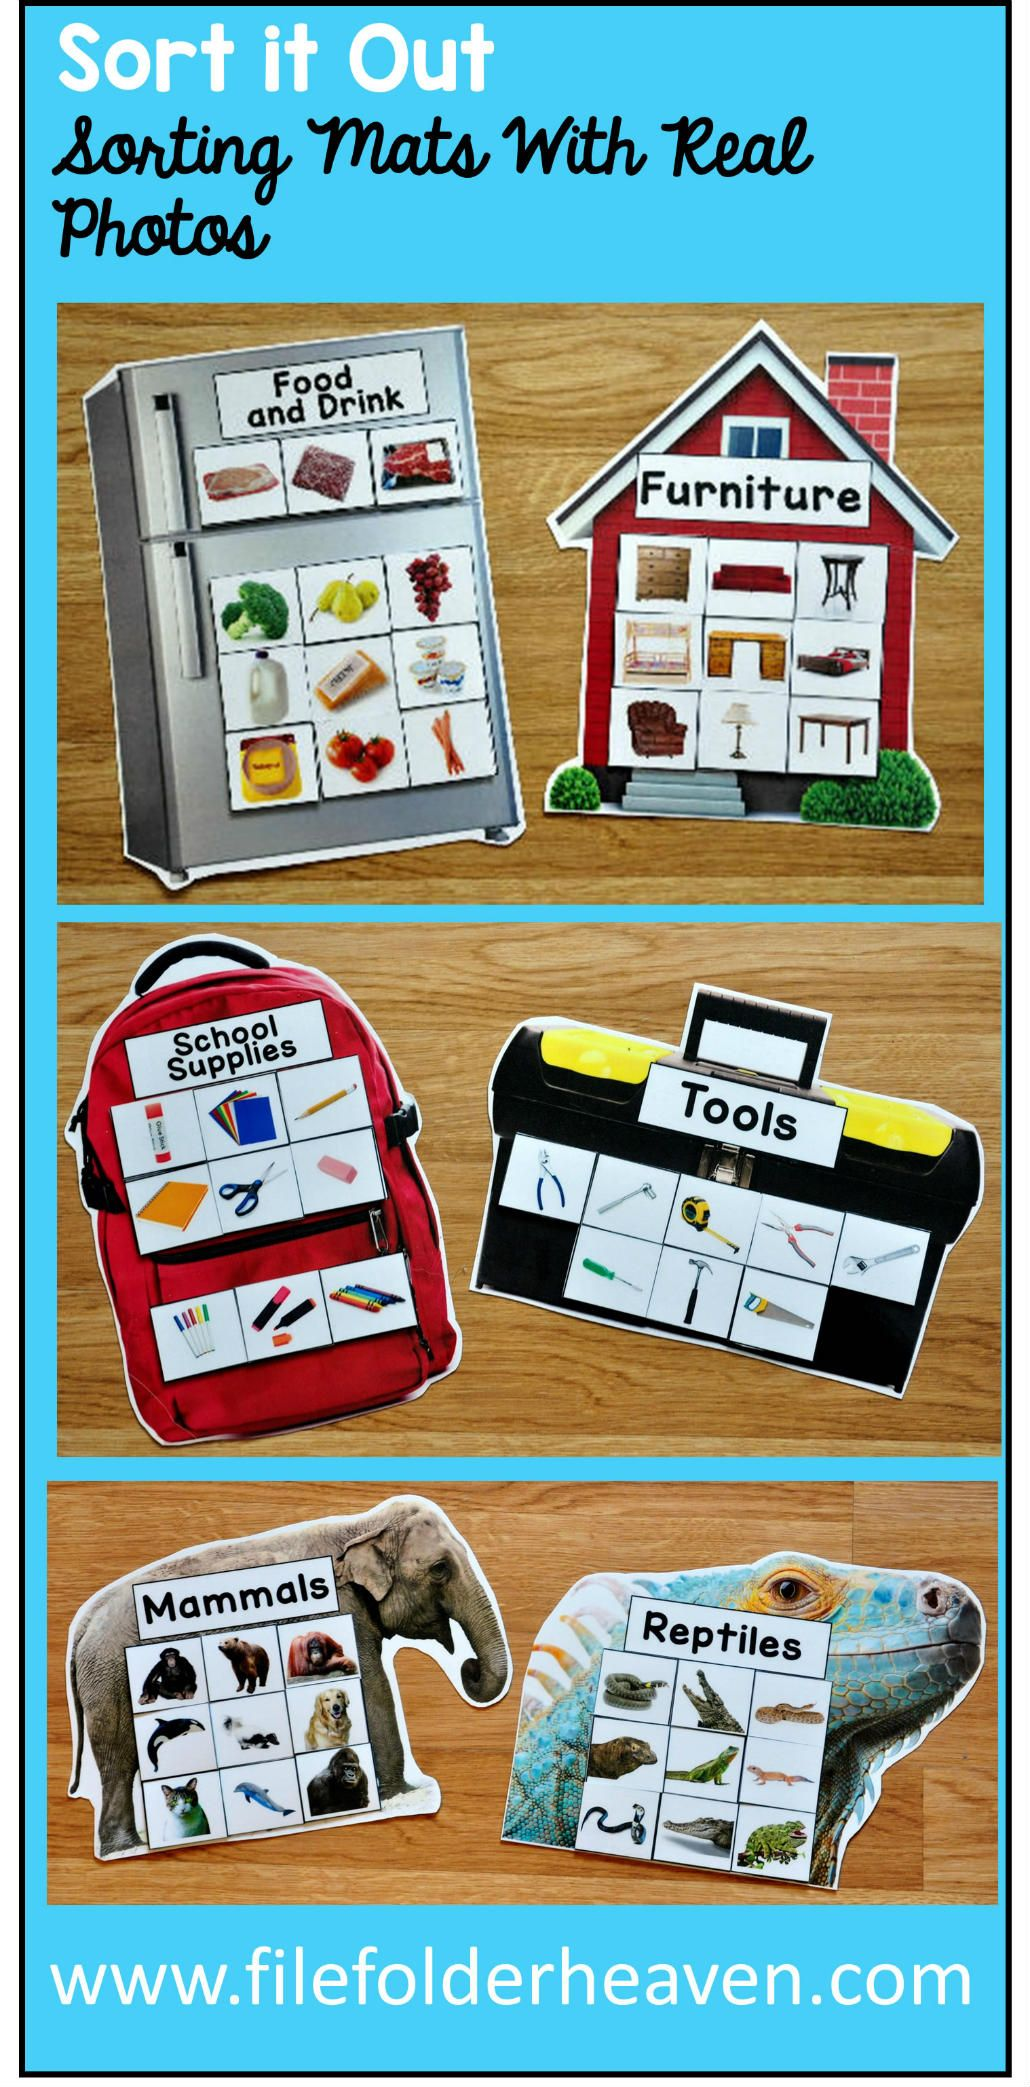 These Sorting Activities Sorting Mats With Real Photos Include 15 Unique